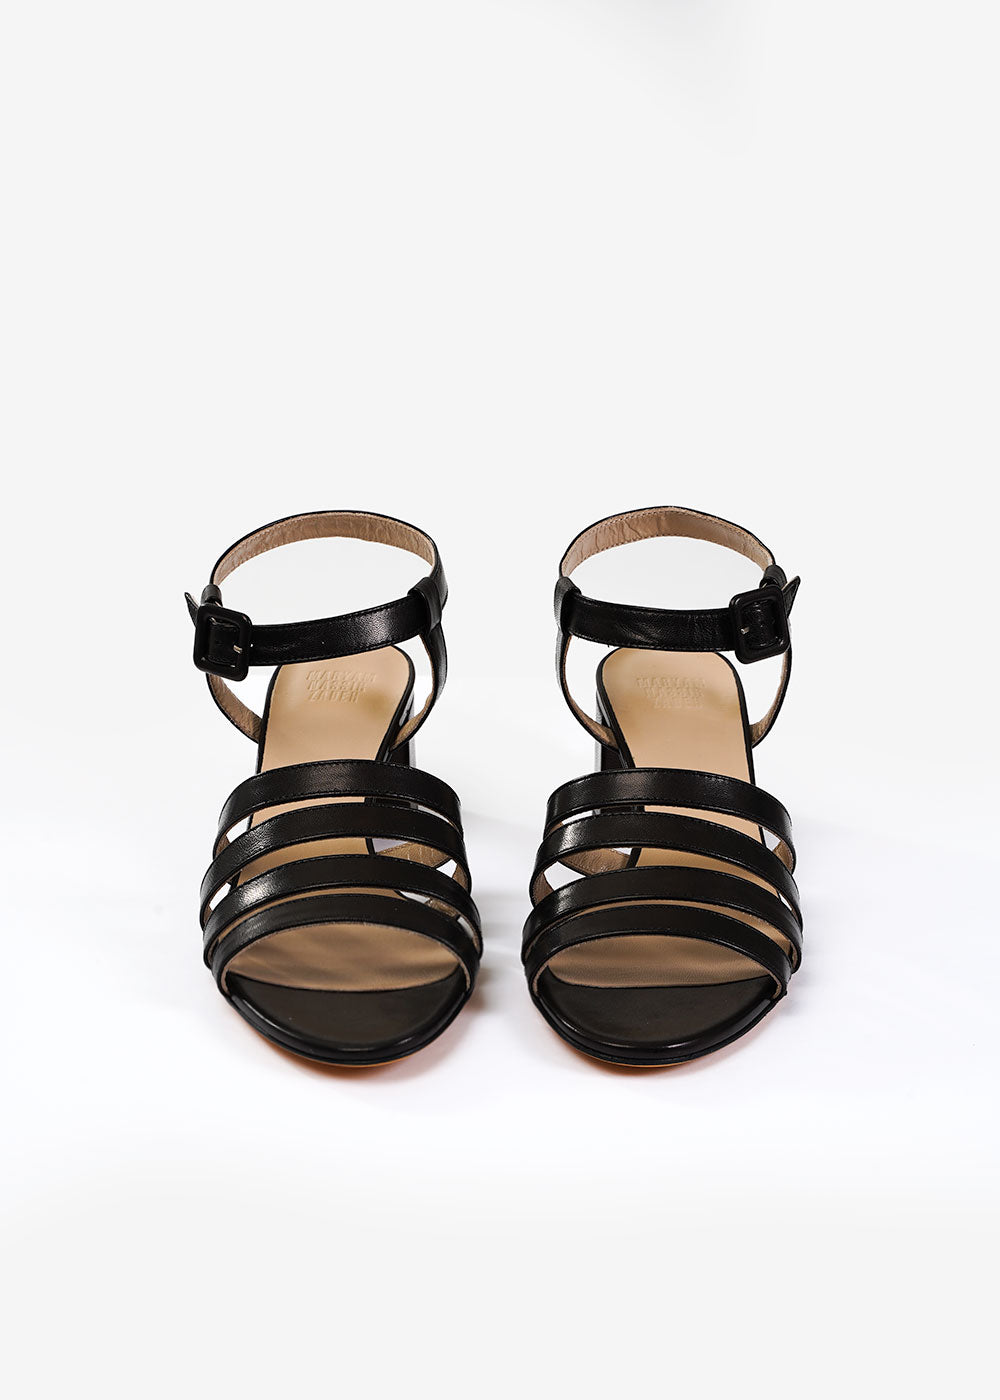 Maryam Nassir Zadeh Black Palma Low Sandal — Shop sustainable fashion and slow fashion at New Classics Studios